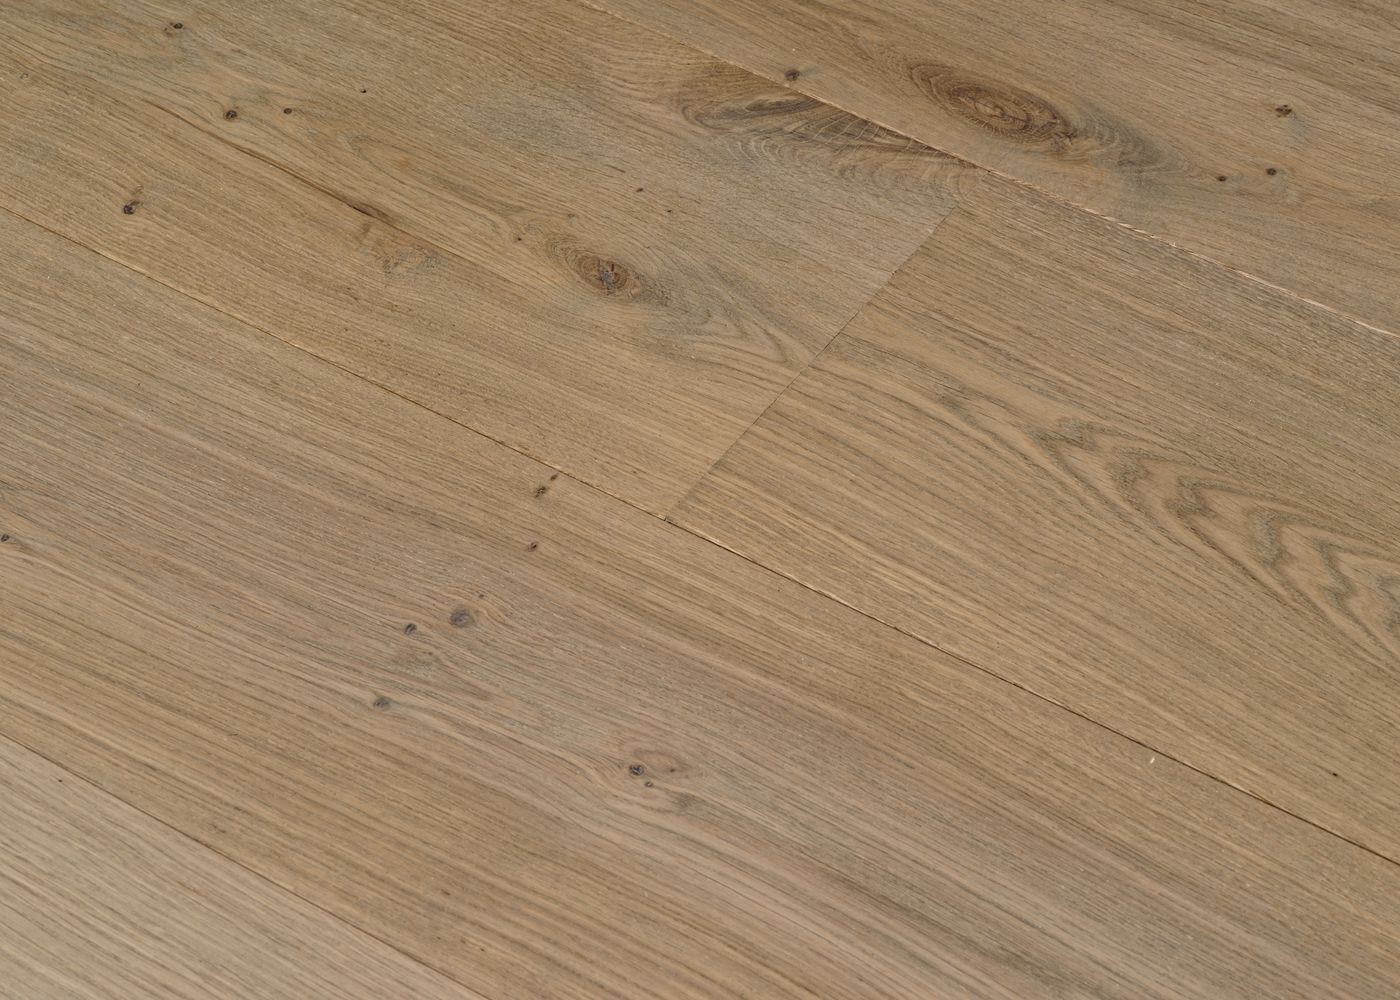 Parquet chêne massif TAUPE noeuds ouverts Matière huile cire 20x160/180/200x400-2400